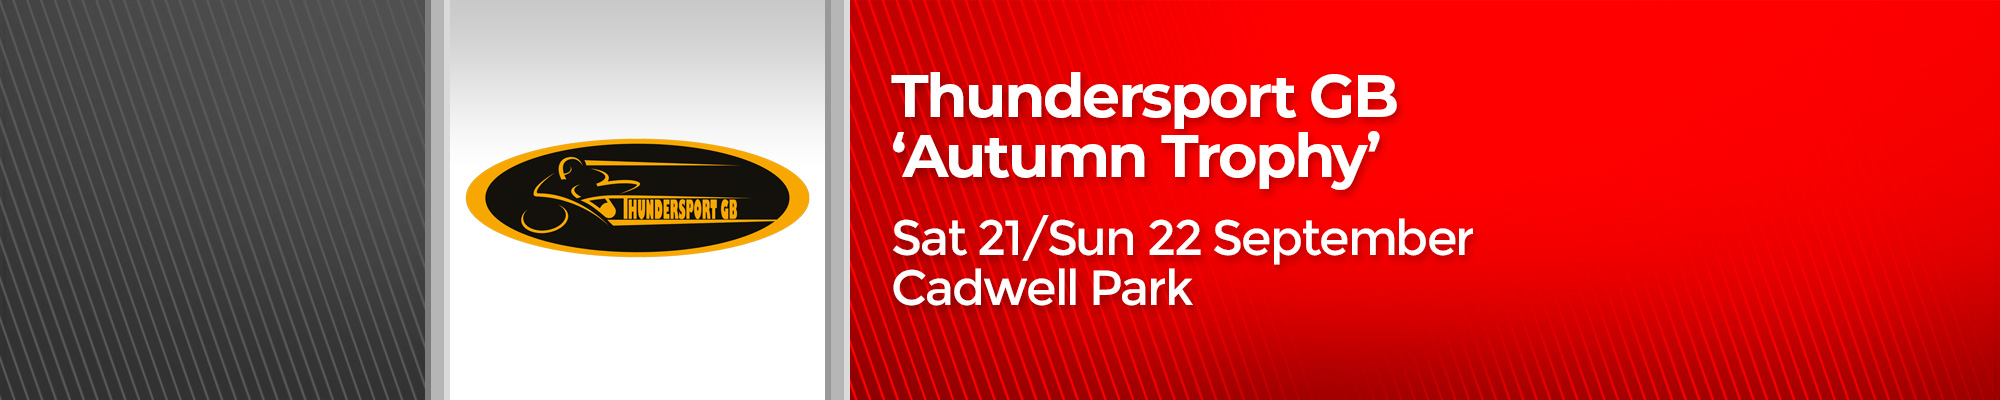 Thundersport GB 'Autumn Trophy'